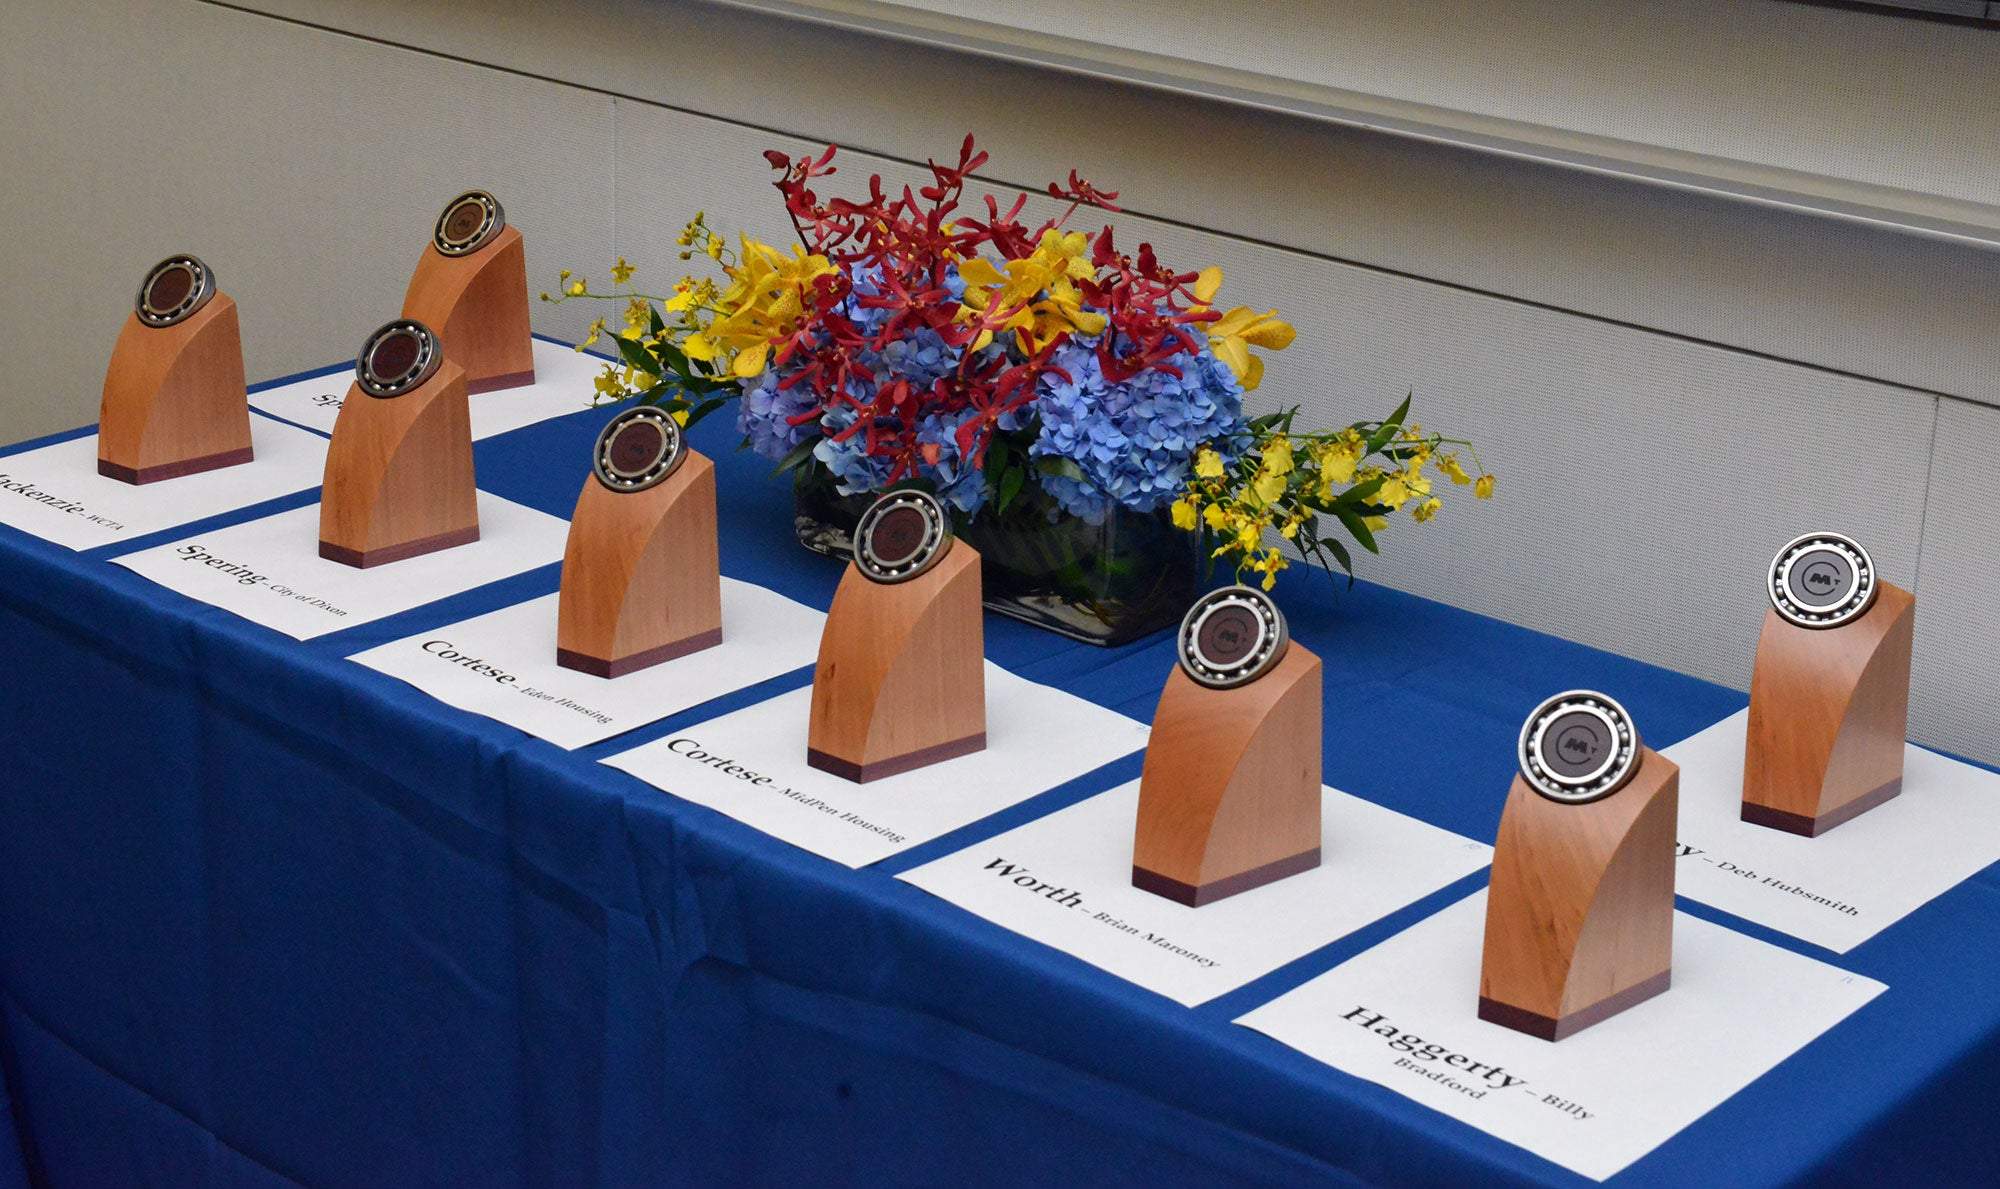 MTC Transportation Awards trophies sit on a table, each labelled with the name of the award presenter and winner.